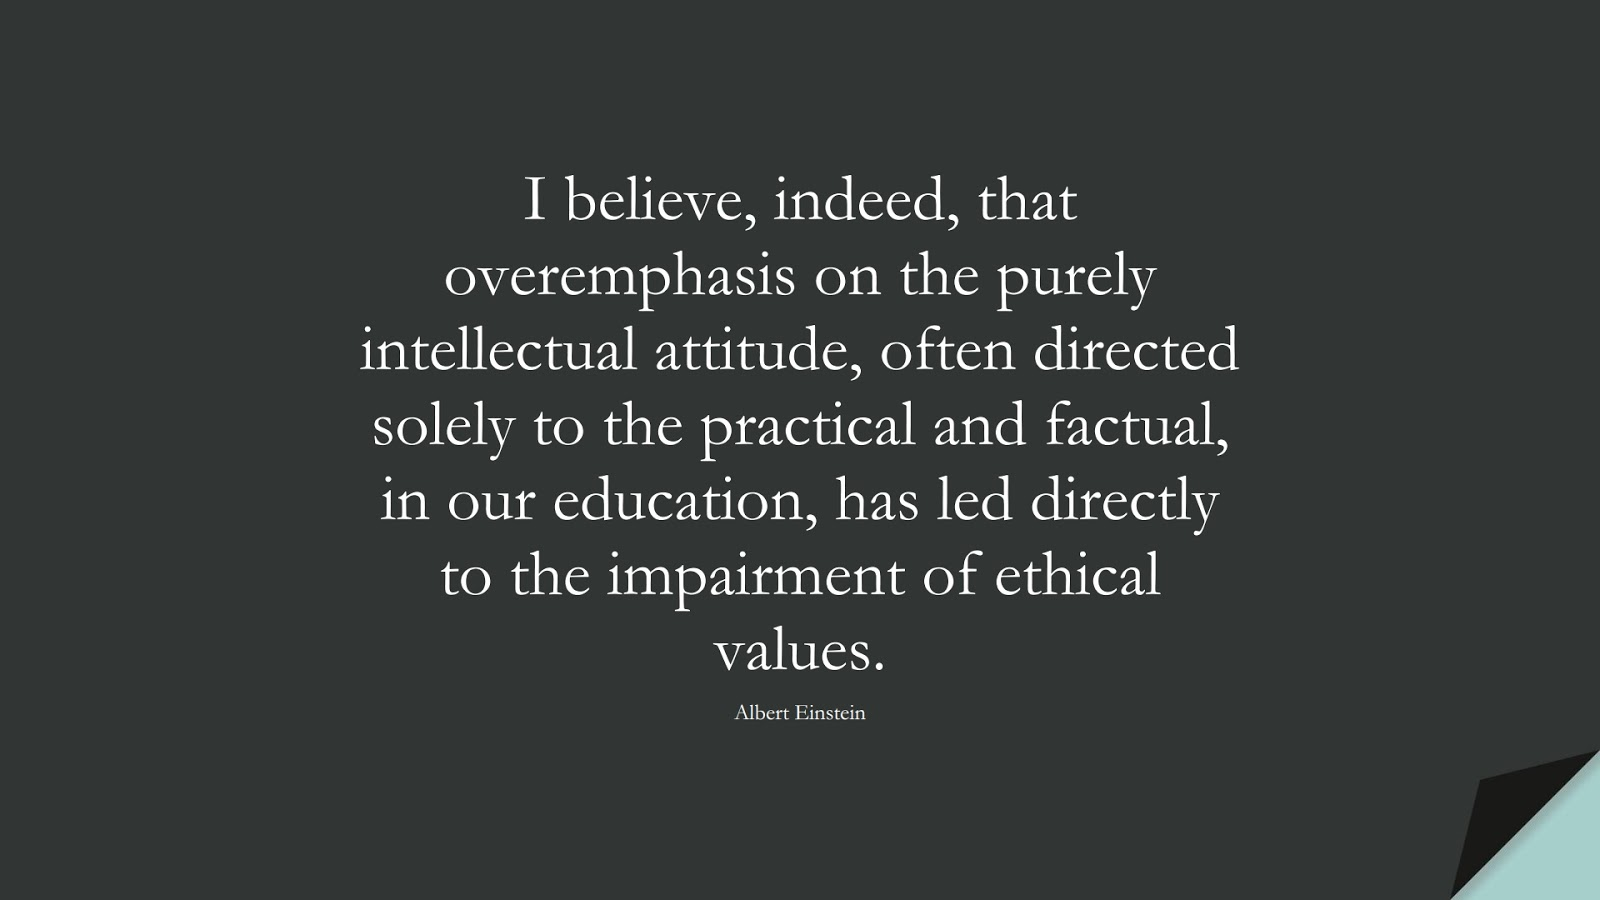 I believe, indeed, that overemphasis on the purely intellectual attitude, often directed solely to the practical and factual, in our education, has led directly to the impairment of ethical values. (Albert Einstein);  #AlbertEnsteinQuotes